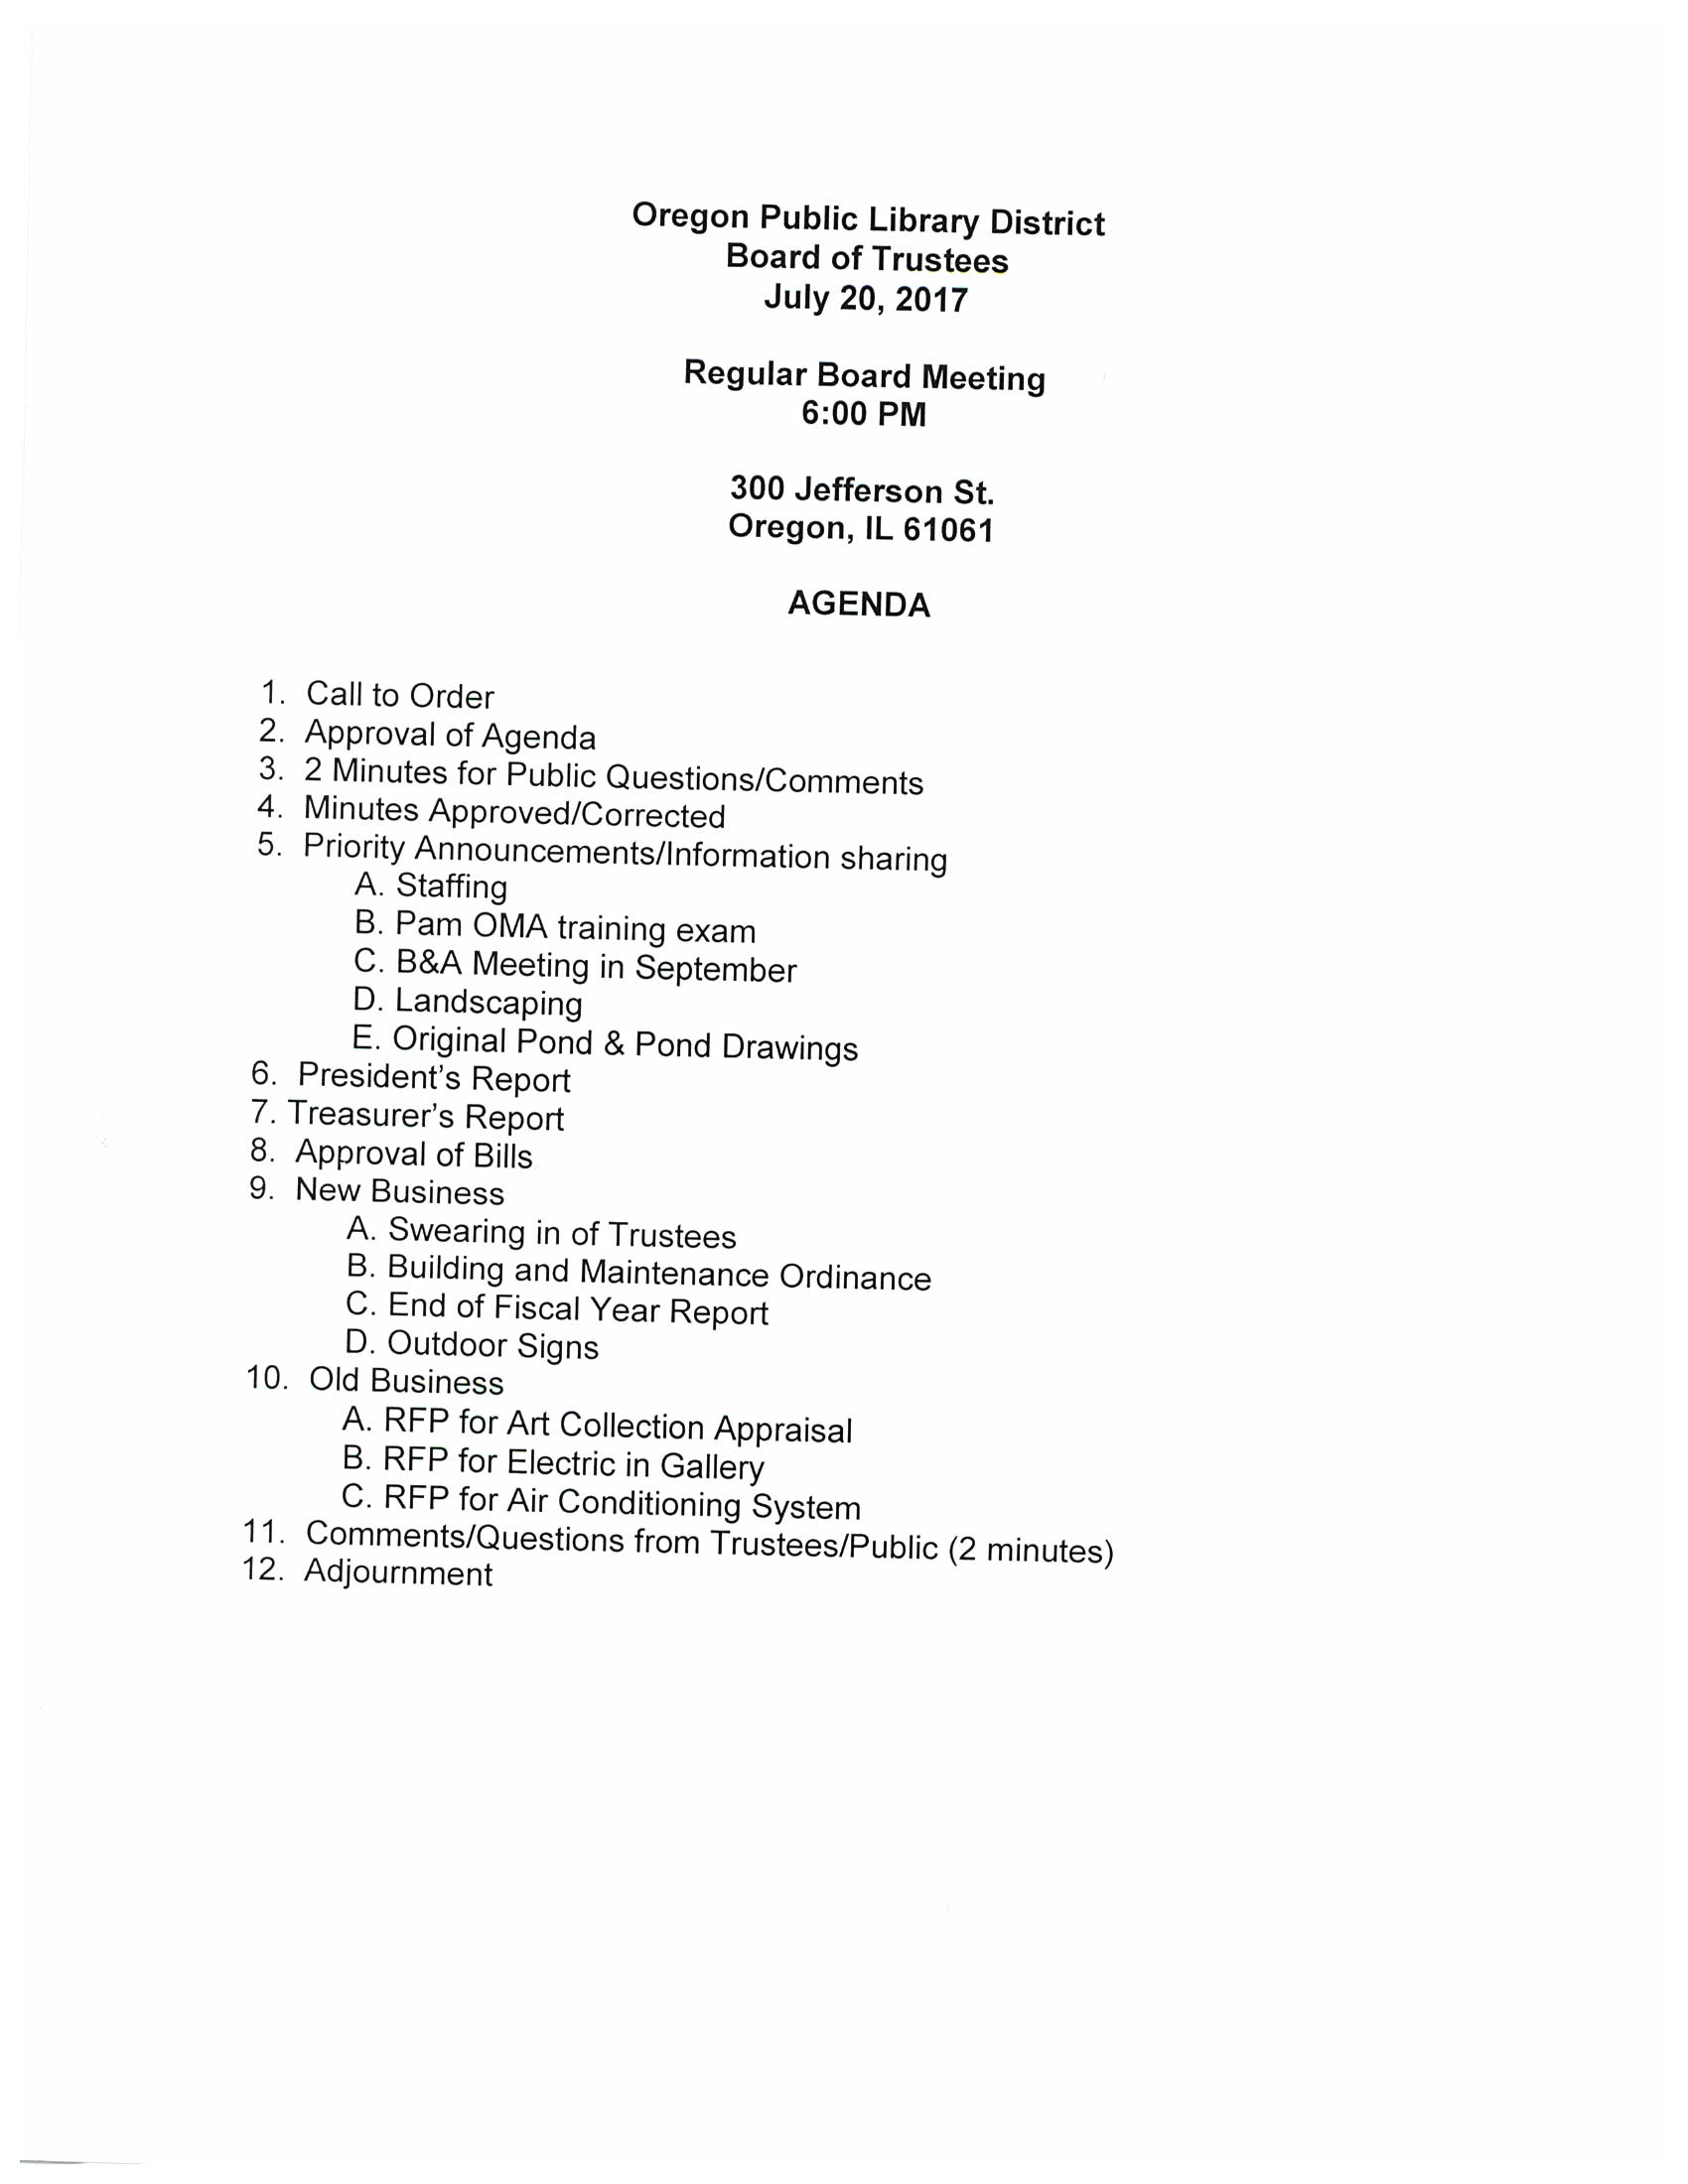 agenda and meeting